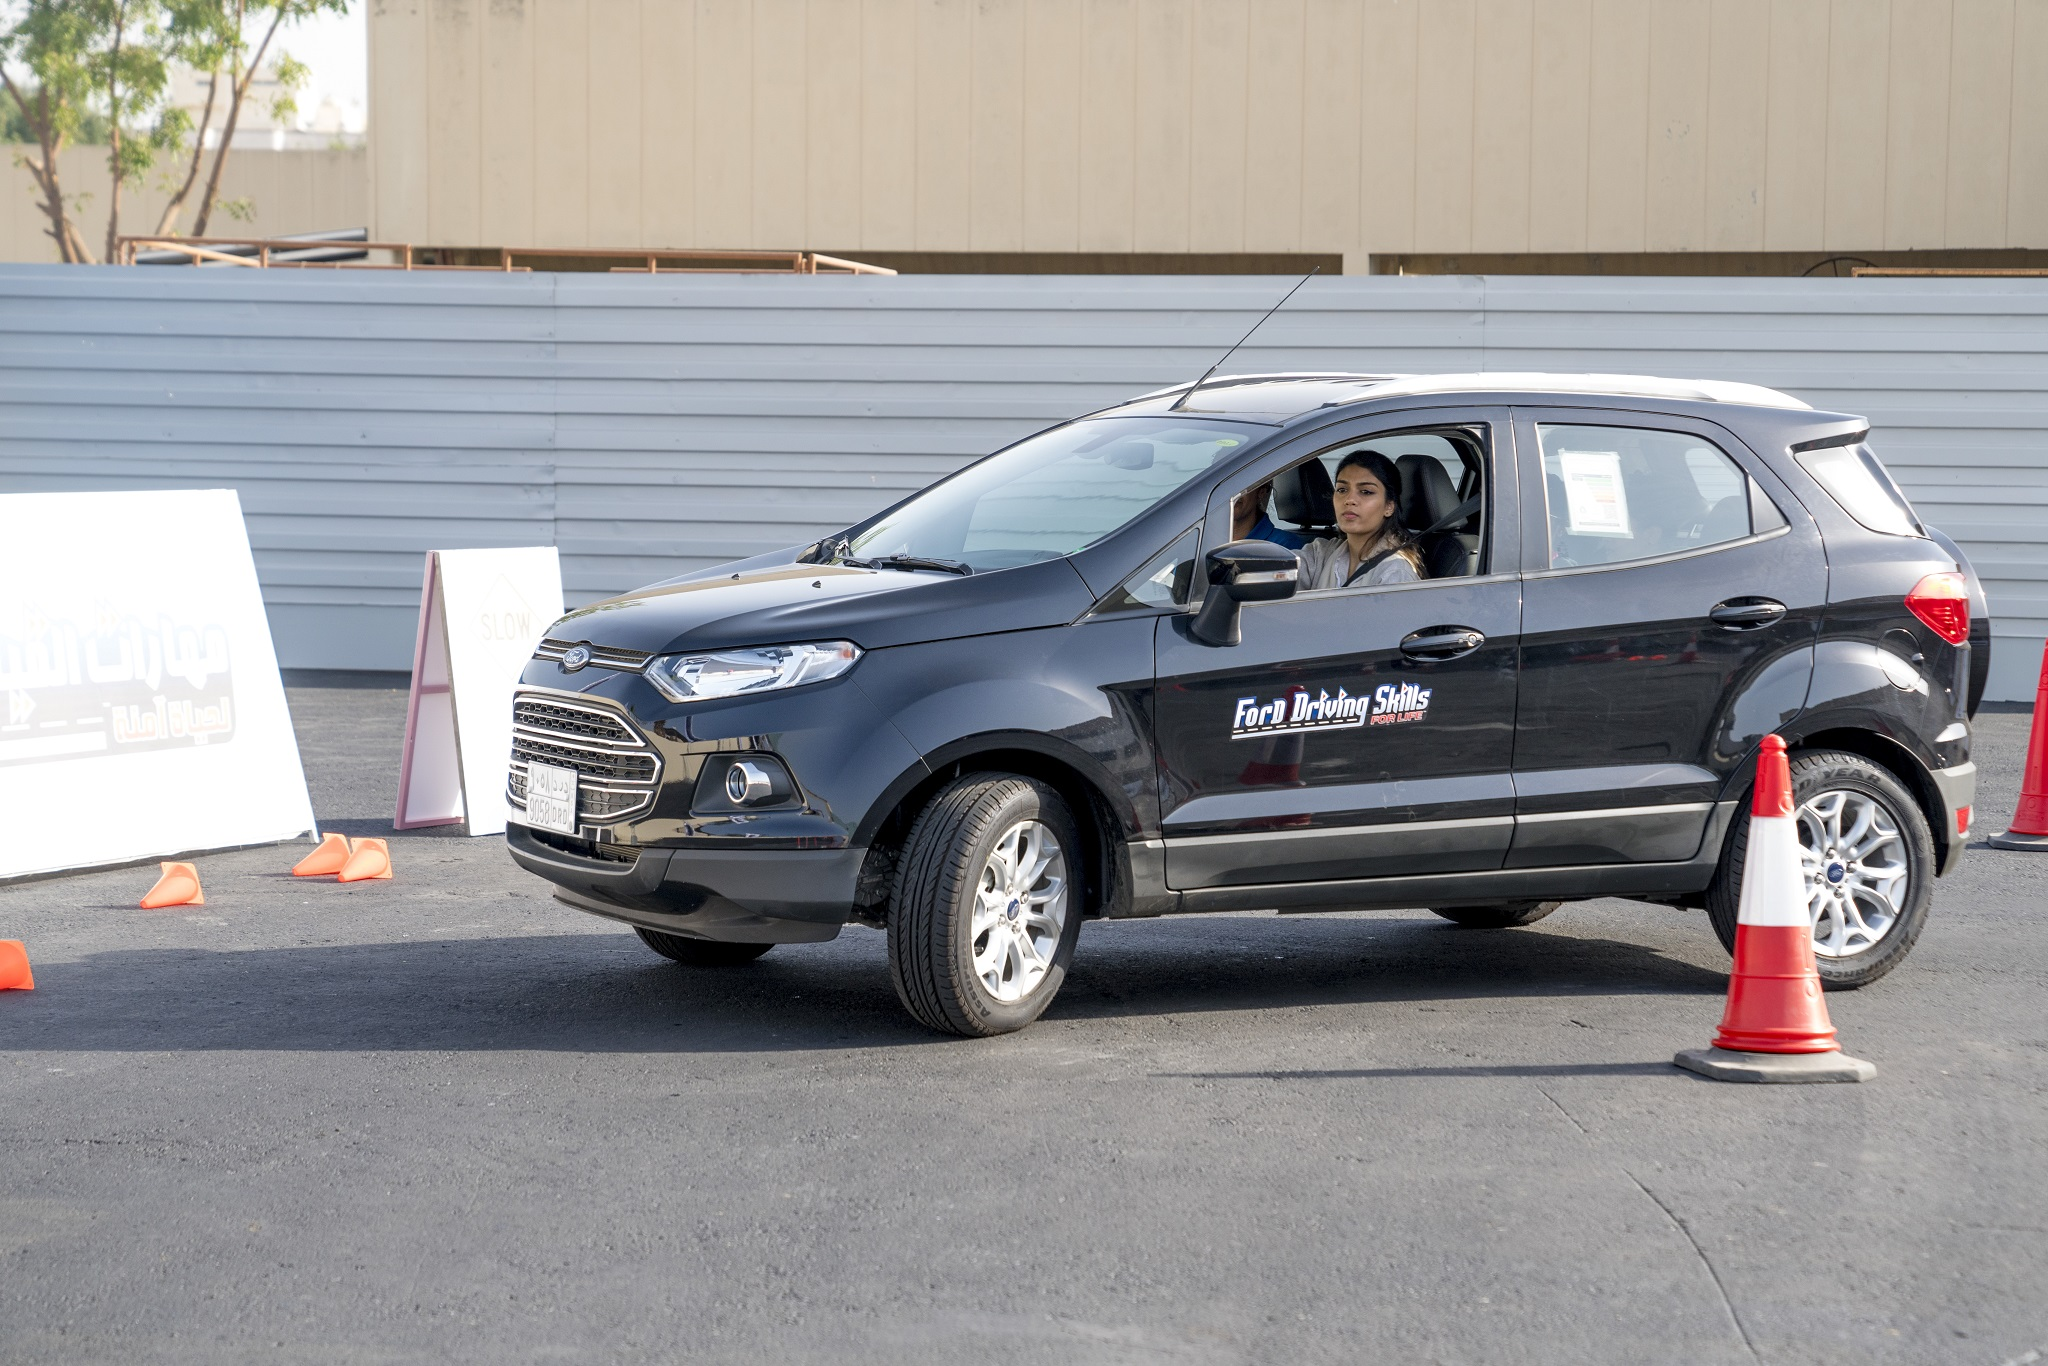 Ford Teams up with Effat University for Debut of Program for Women in Saudi Arabia